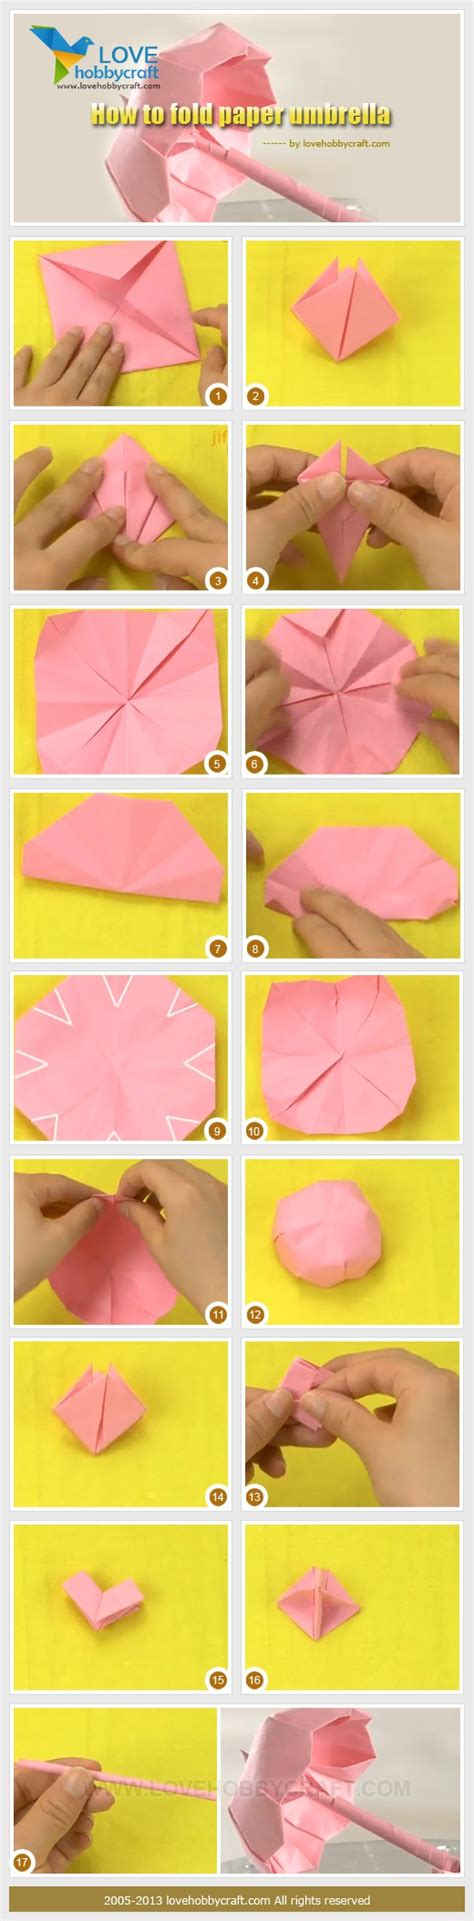 Steps To Make Paper Crafts - step guide for paper umbrella crafts